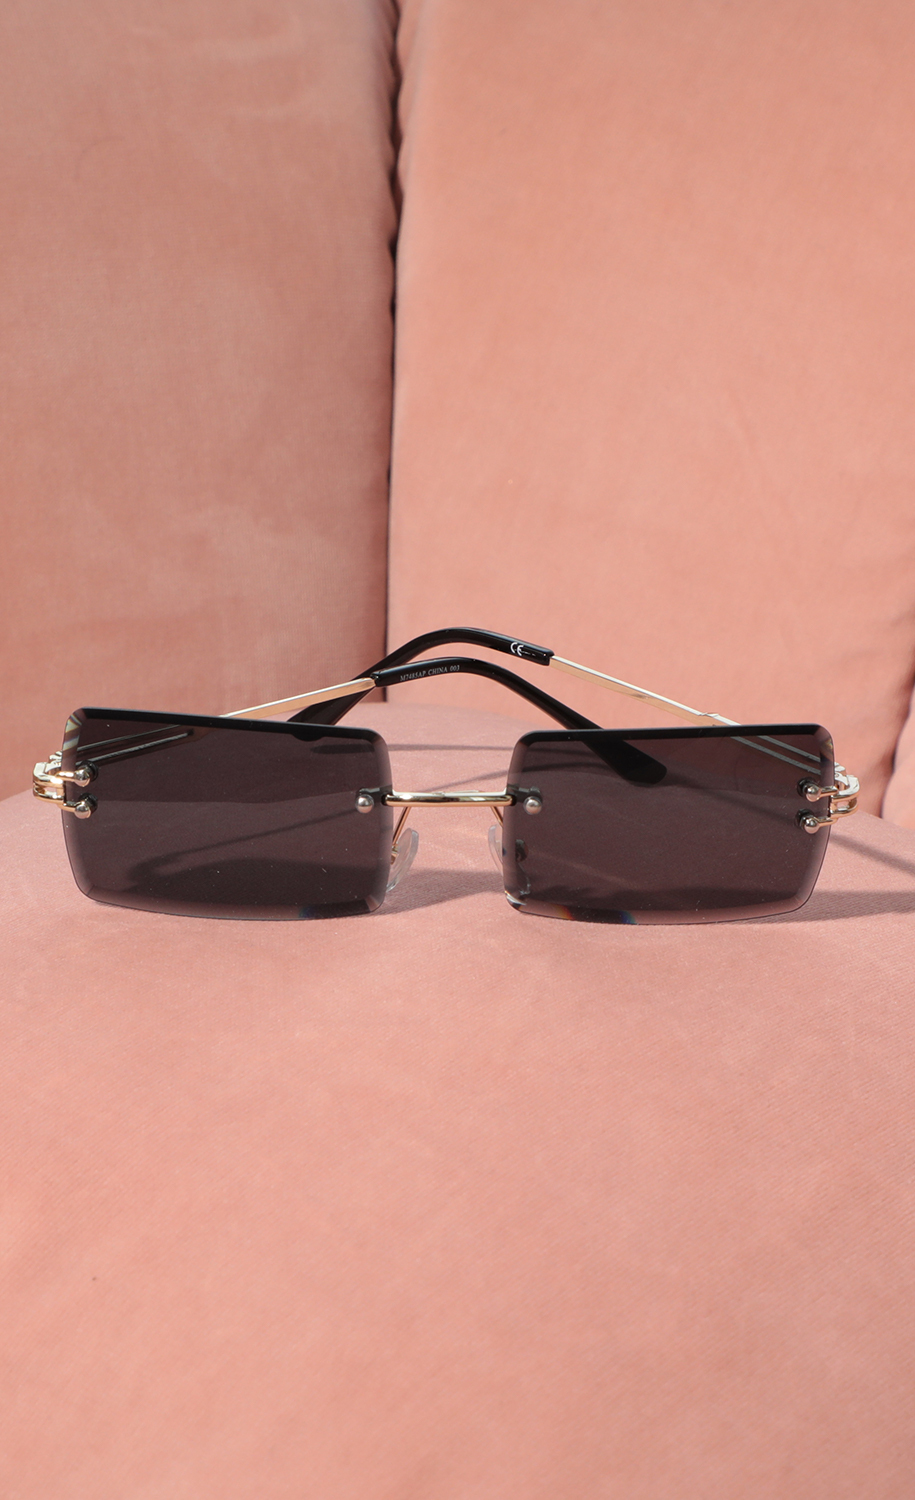 90s Baby Rectangle Sunglasses in Black